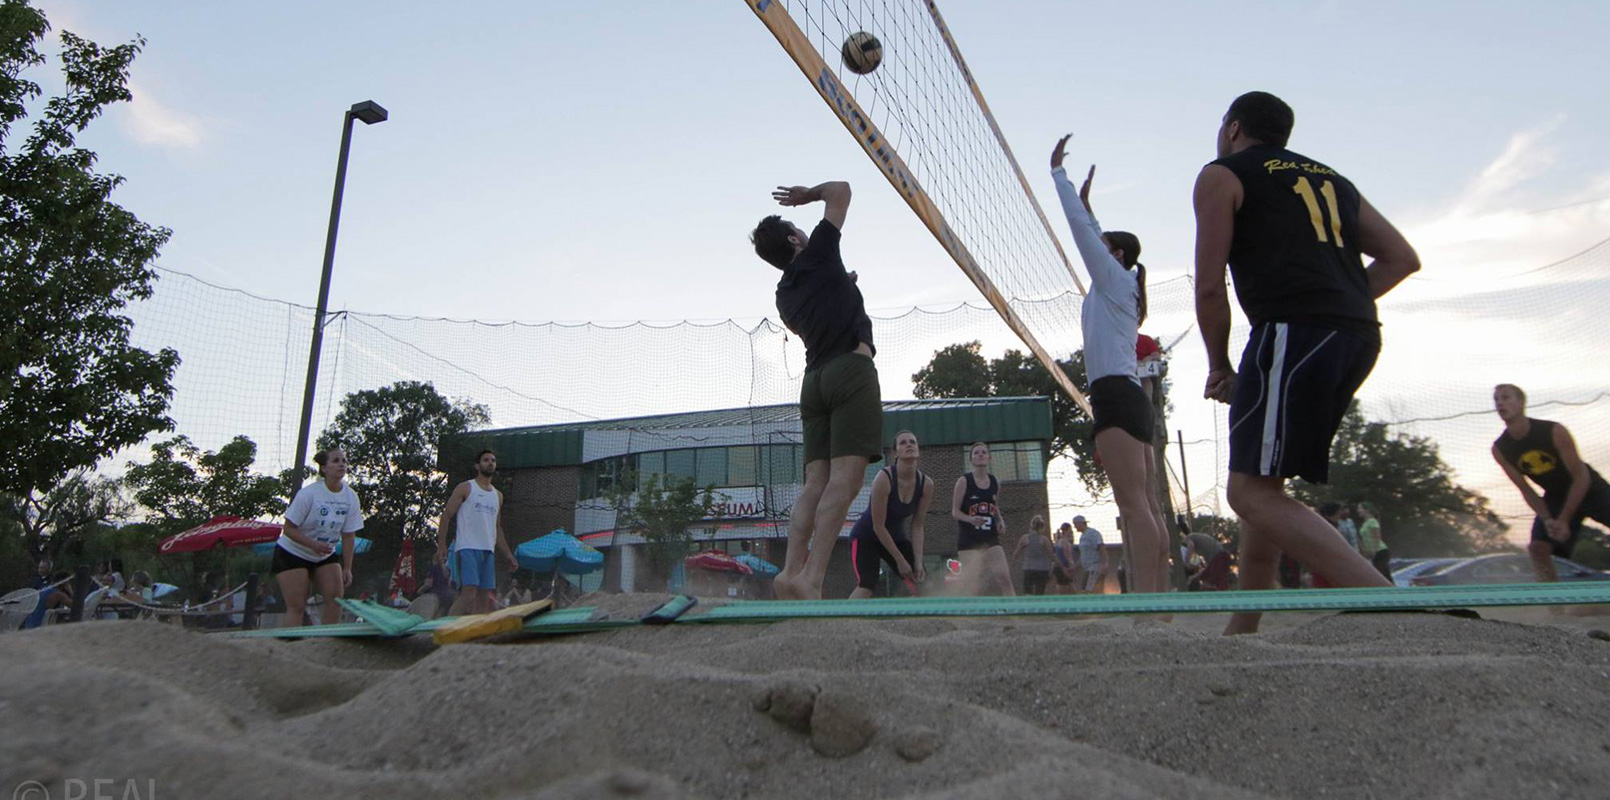 Volleyball at the Coliseum Bar